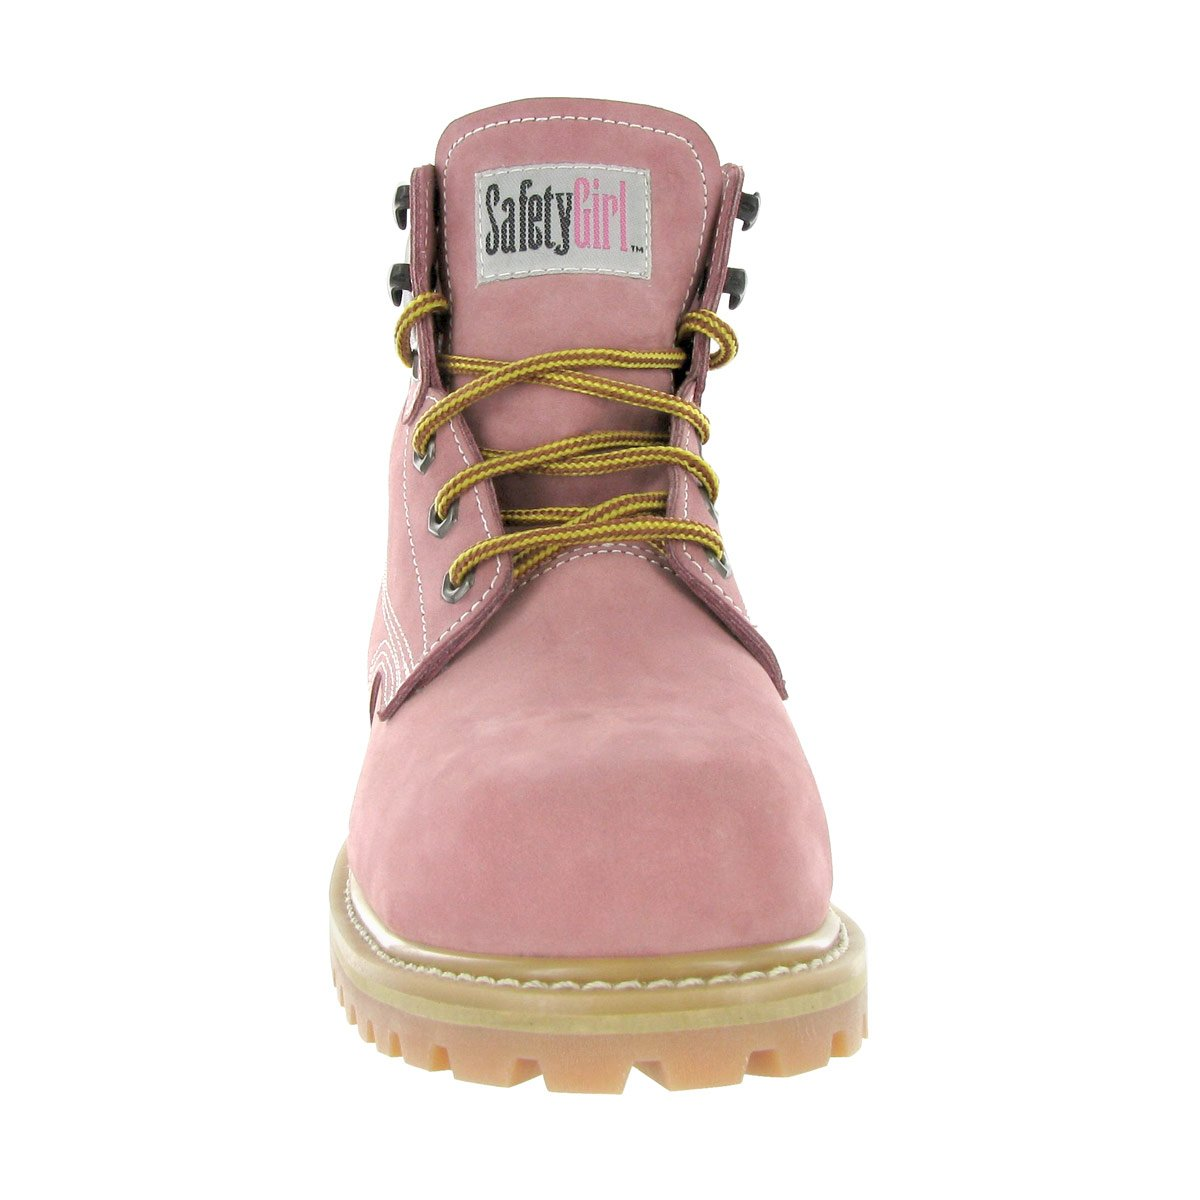 Amazon.com: Safety Girl GS003-Lt Pink-4.5M Steel Toe Work Boots - Light Pink - 4.5M, English, Capacity, Volume, Leather, 4.5M, Pink (): Industrial & ...